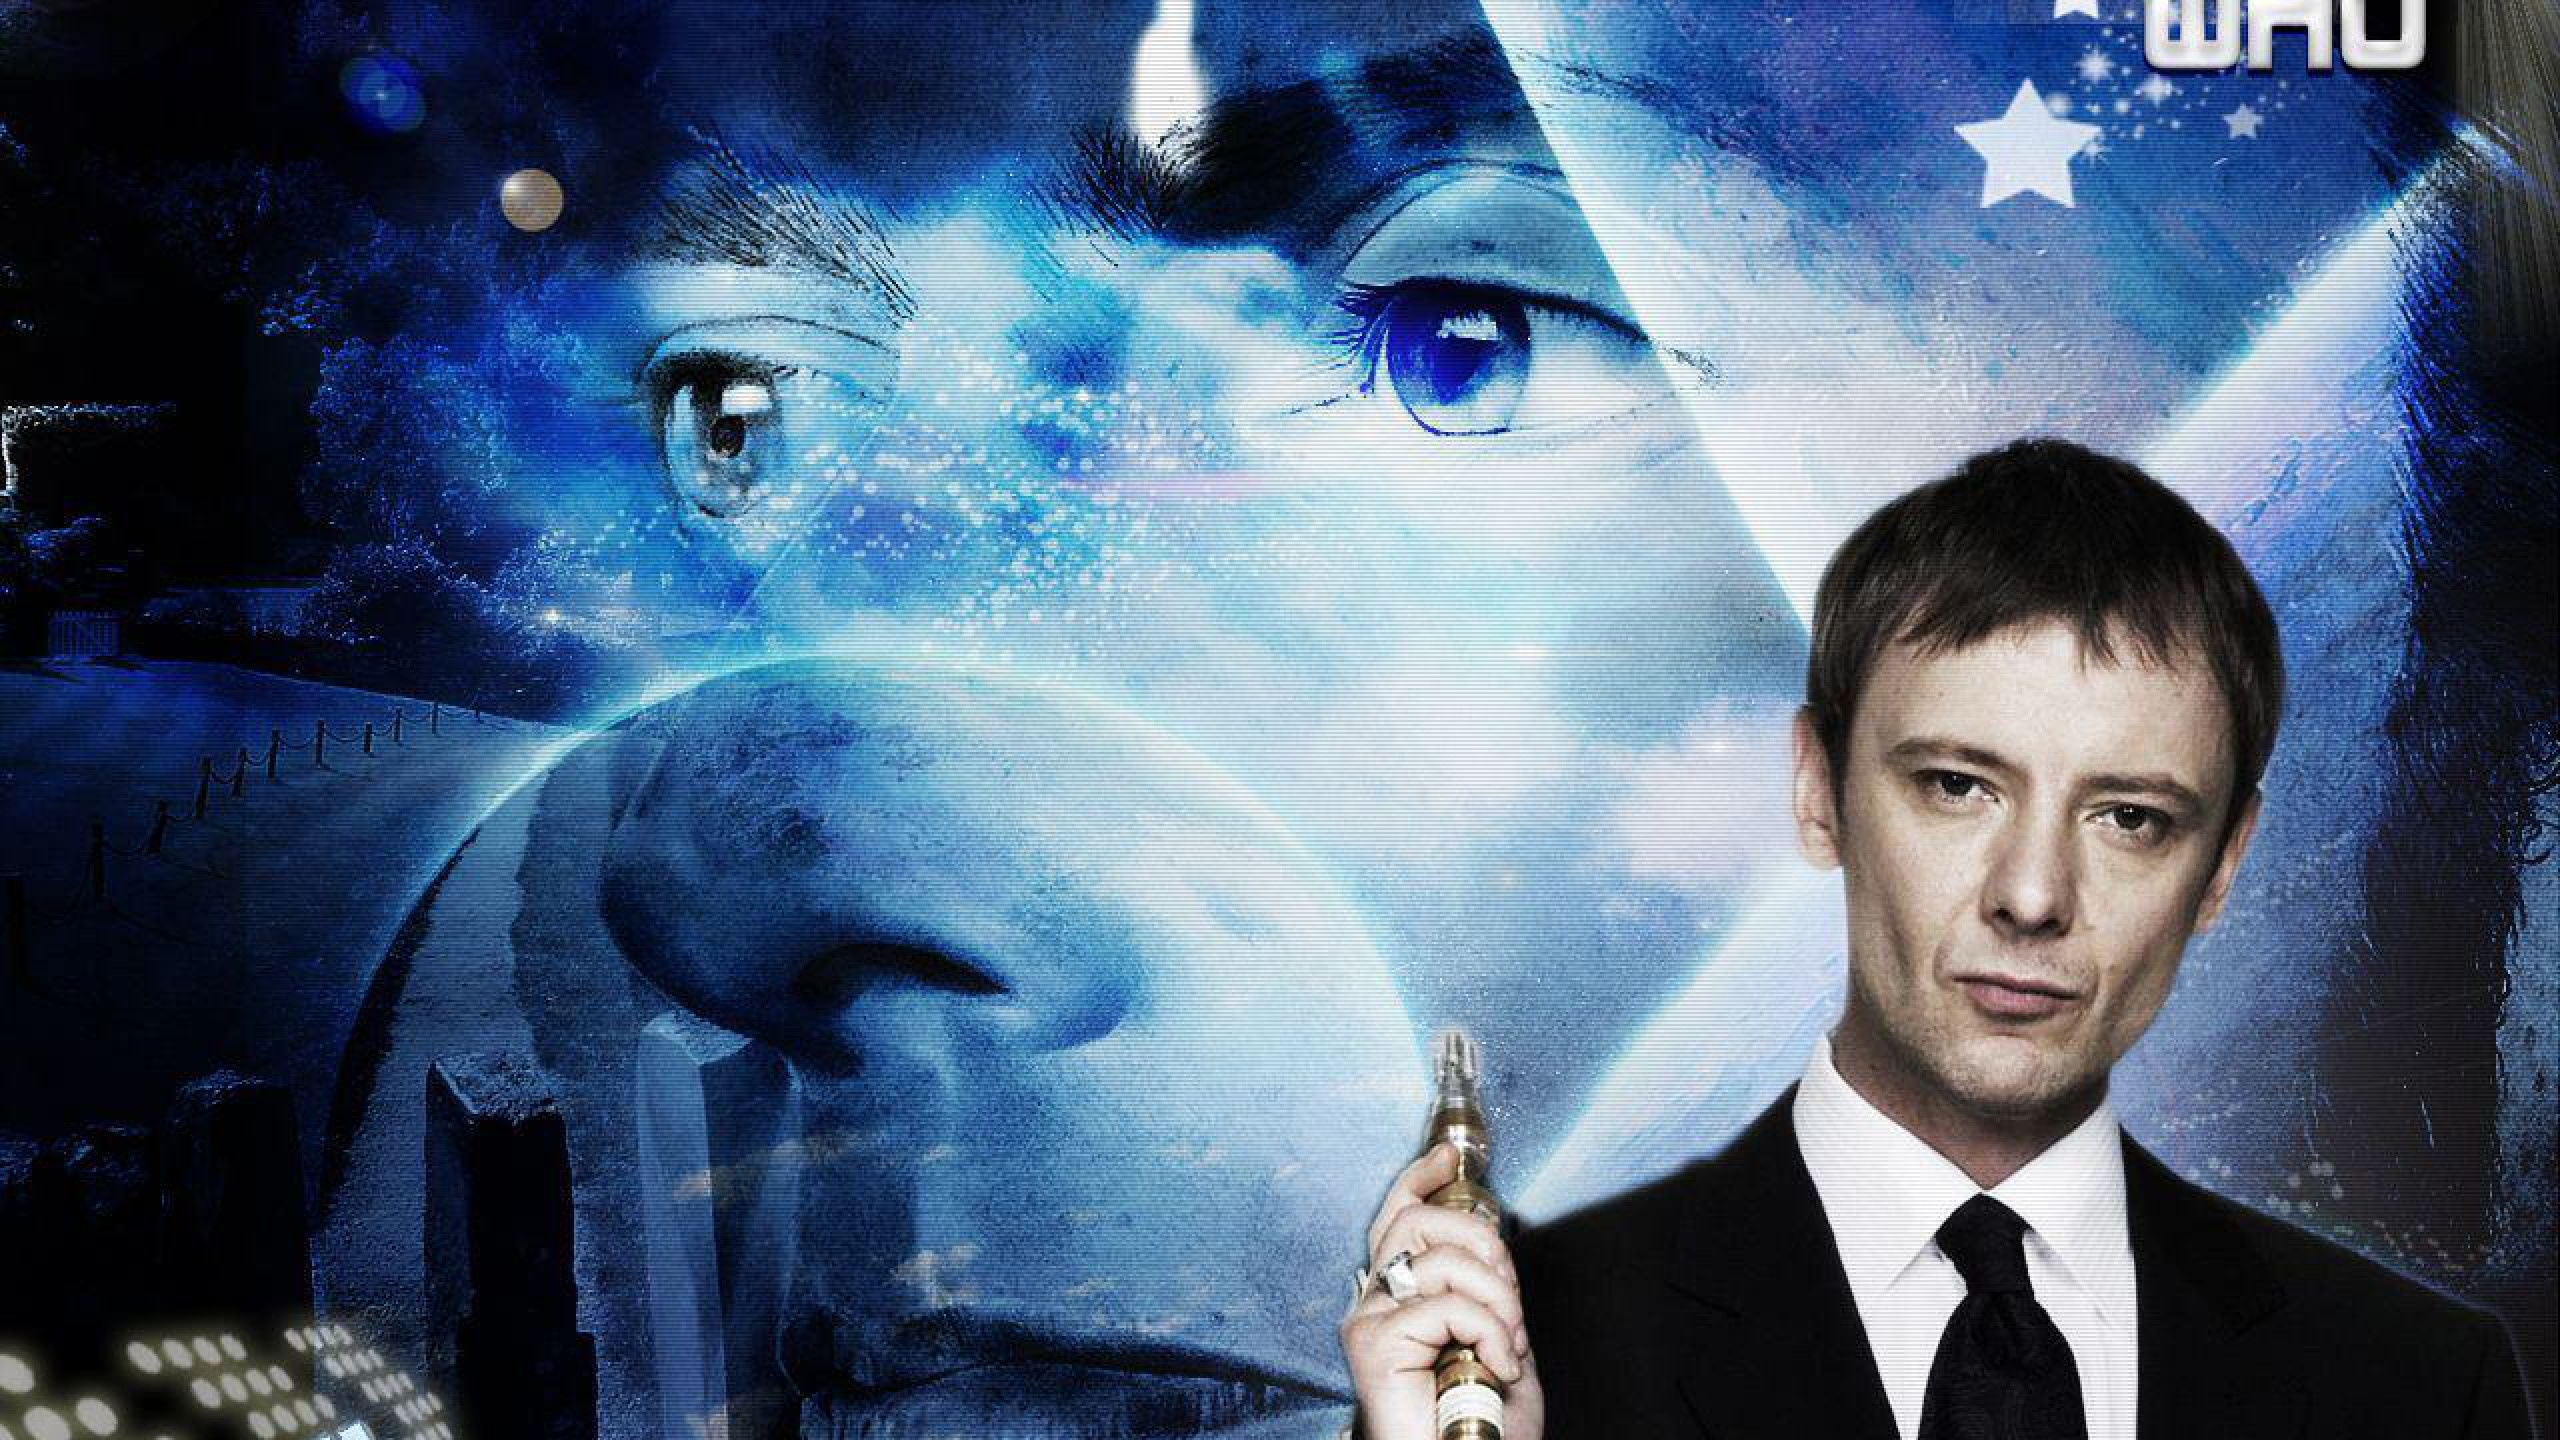 Doctor Who wallpaper 21